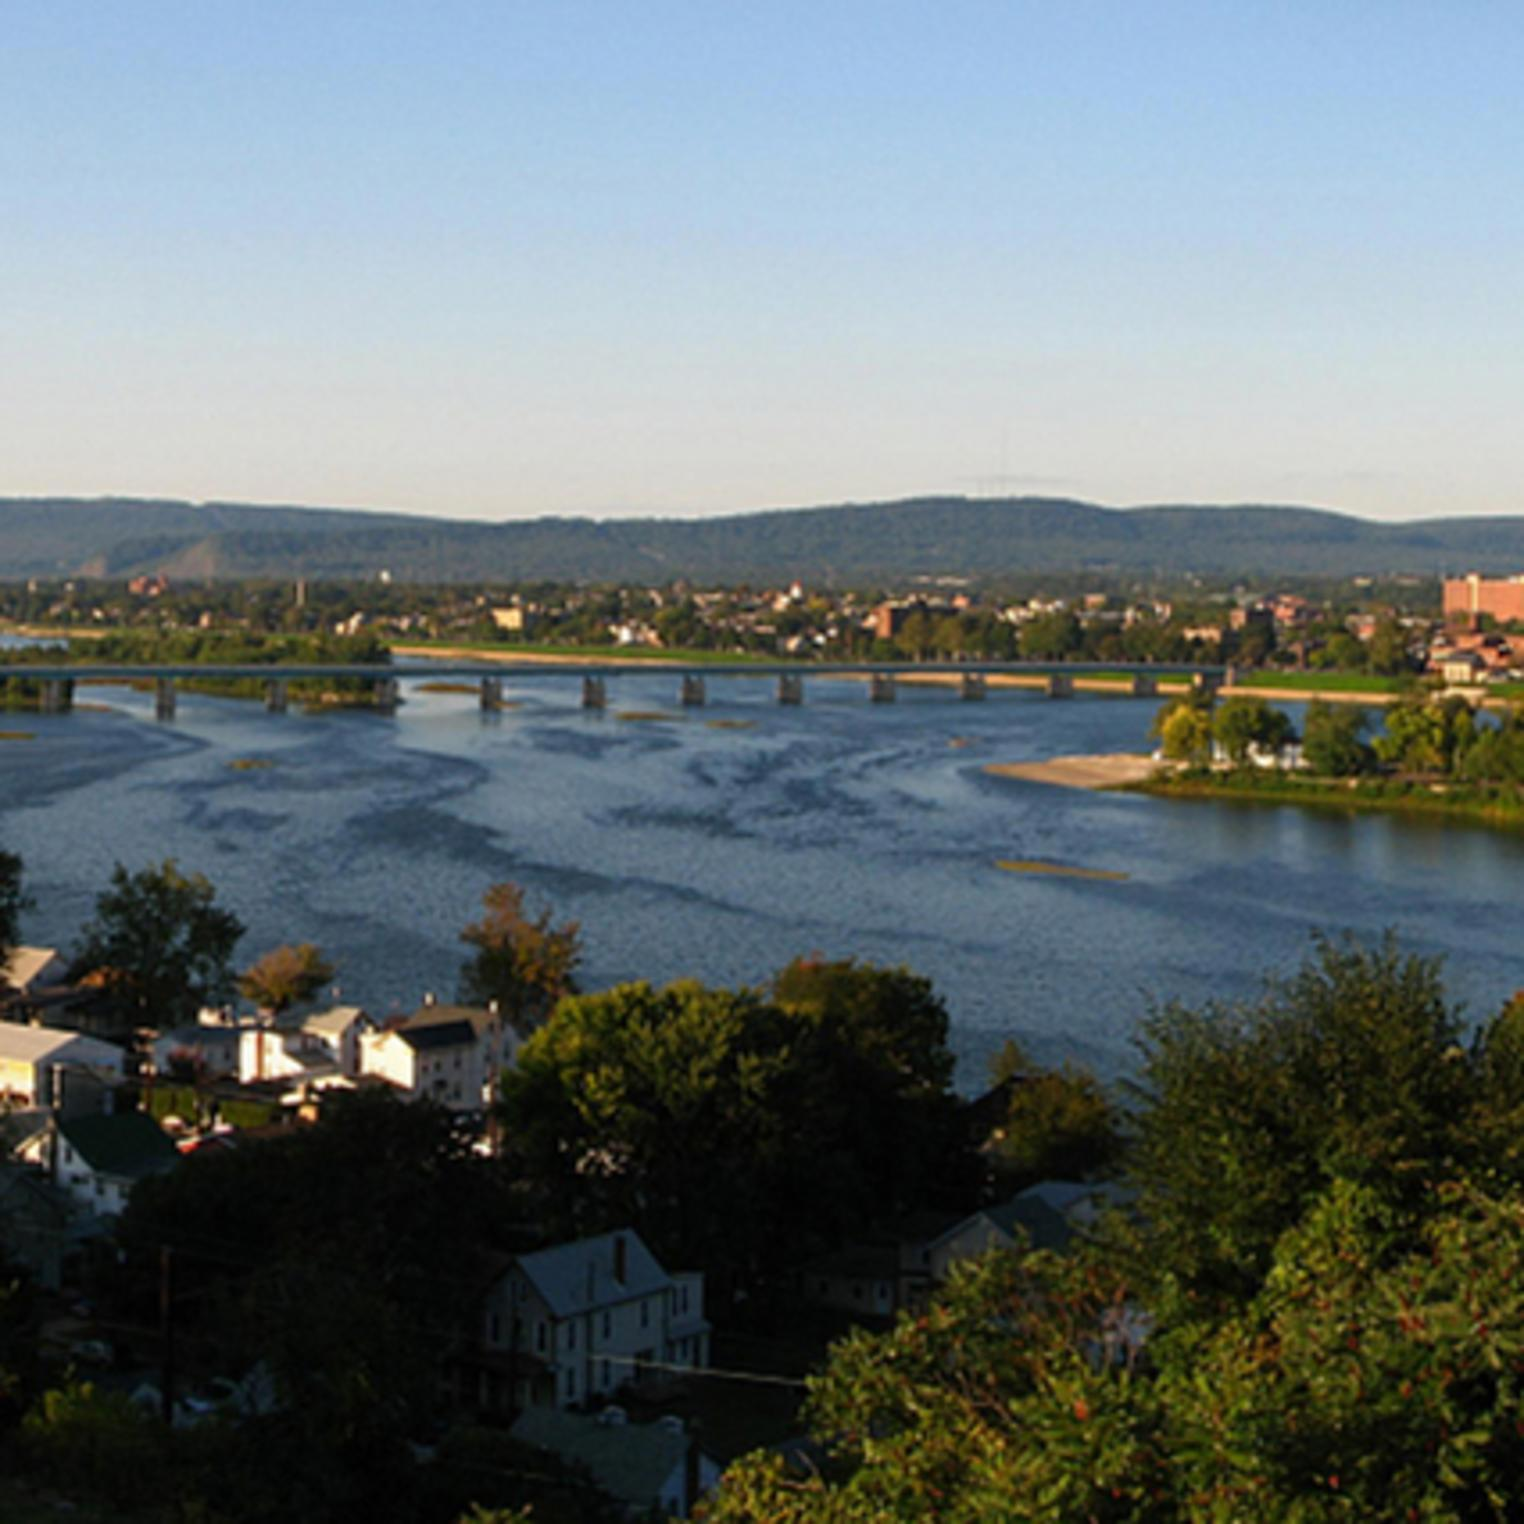 View of the Susquehanna River